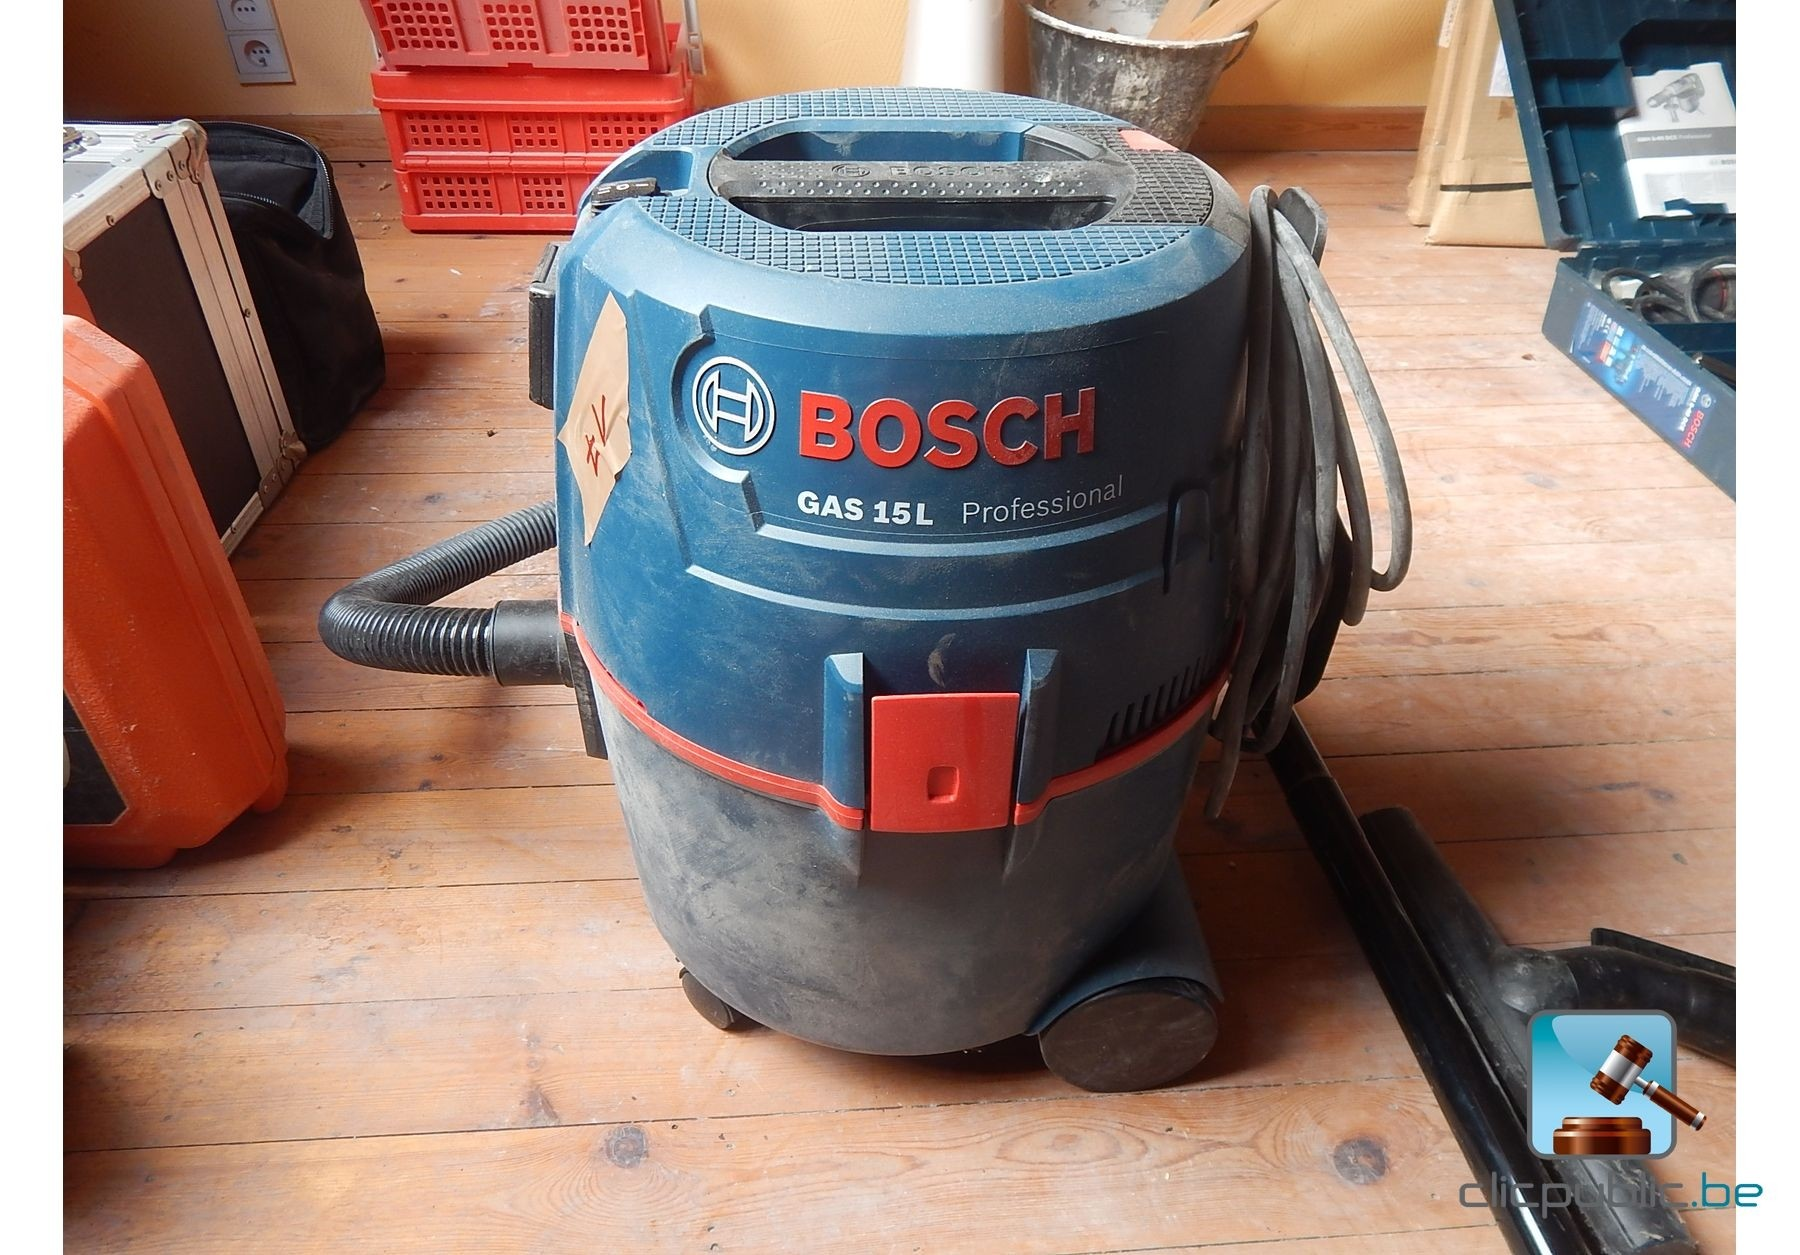 aspirateur de chantier bosch gas 15l professional 1200w vendre sur. Black Bedroom Furniture Sets. Home Design Ideas